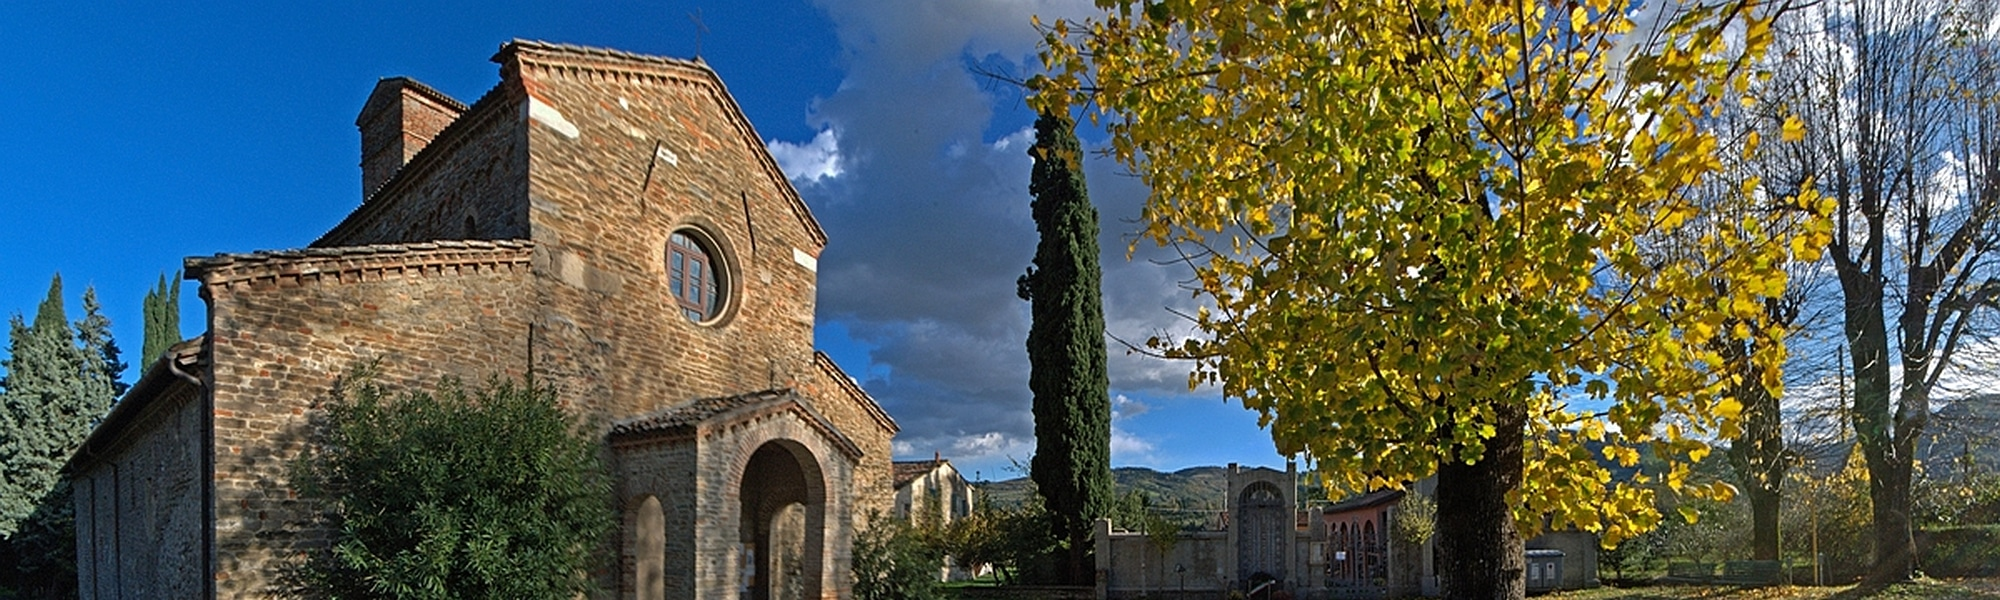 Museo Pieve del Tho